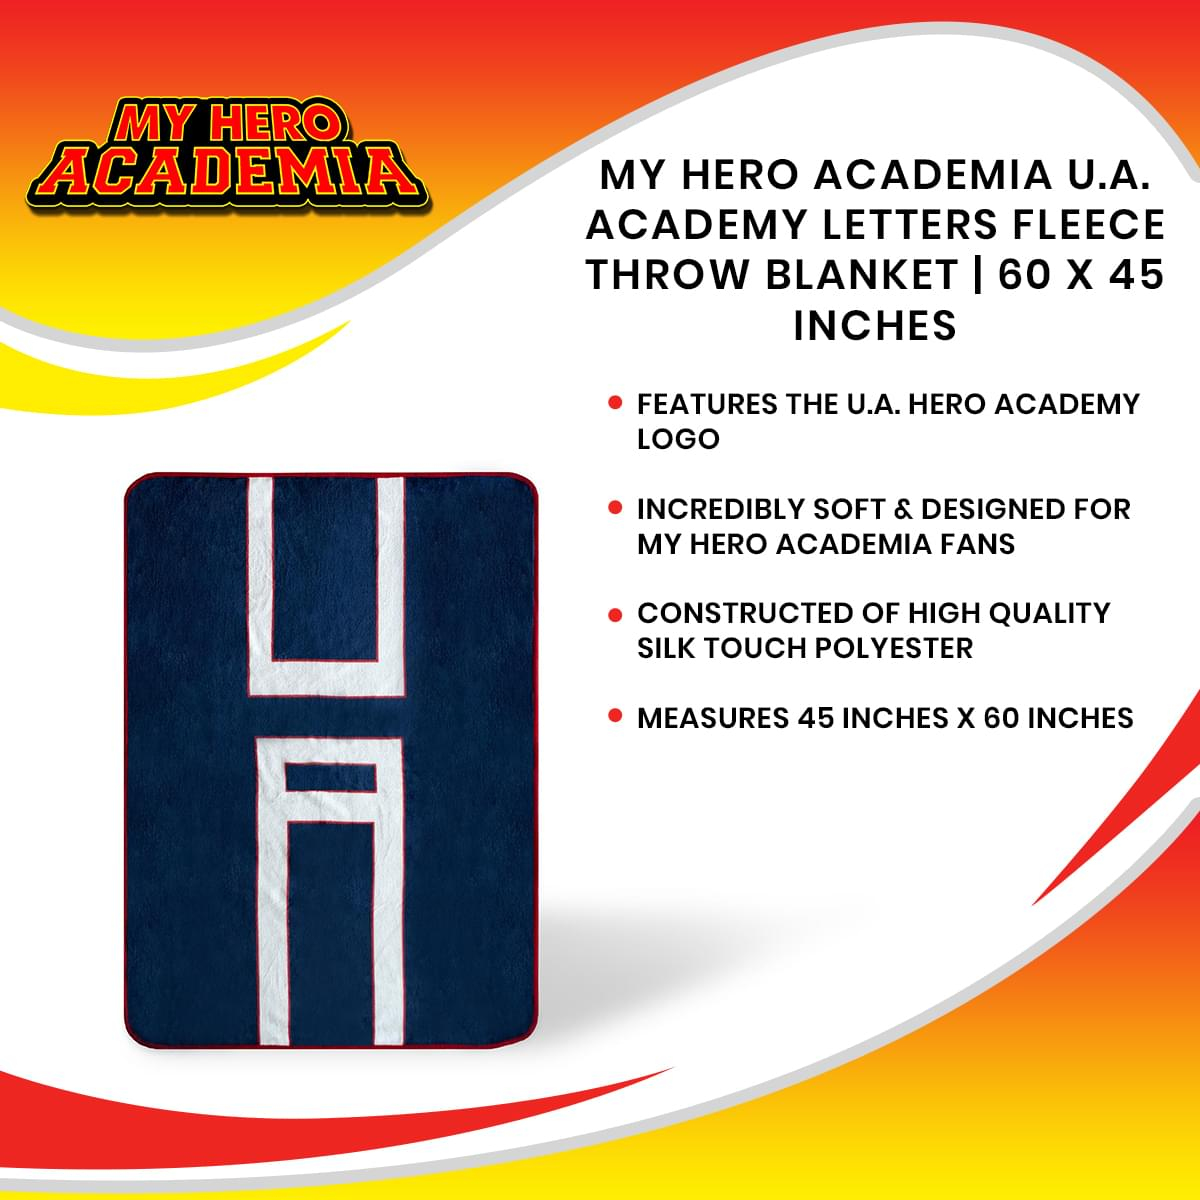 My Hero Academia U.A. Academy Letters Fleece Throw Blanket | 60 x 45 Inches